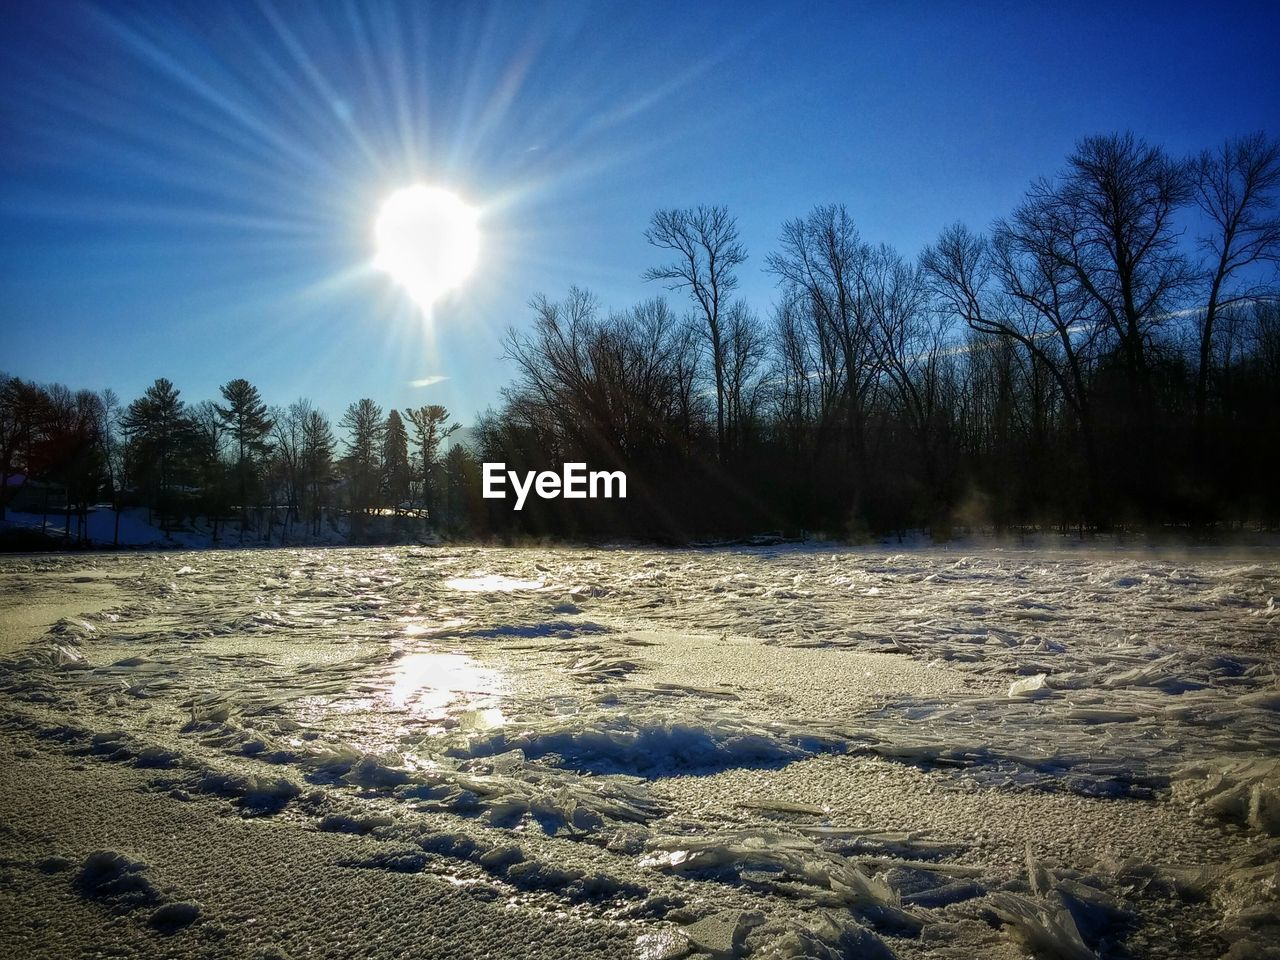 cold temperature, winter, snow, sun, nature, tranquility, tree, beauty in nature, cold, weather, sunbeam, tranquil scene, lens flare, scenics, no people, sunlight, outdoors, frozen, landscape, field, day, bare tree, sky